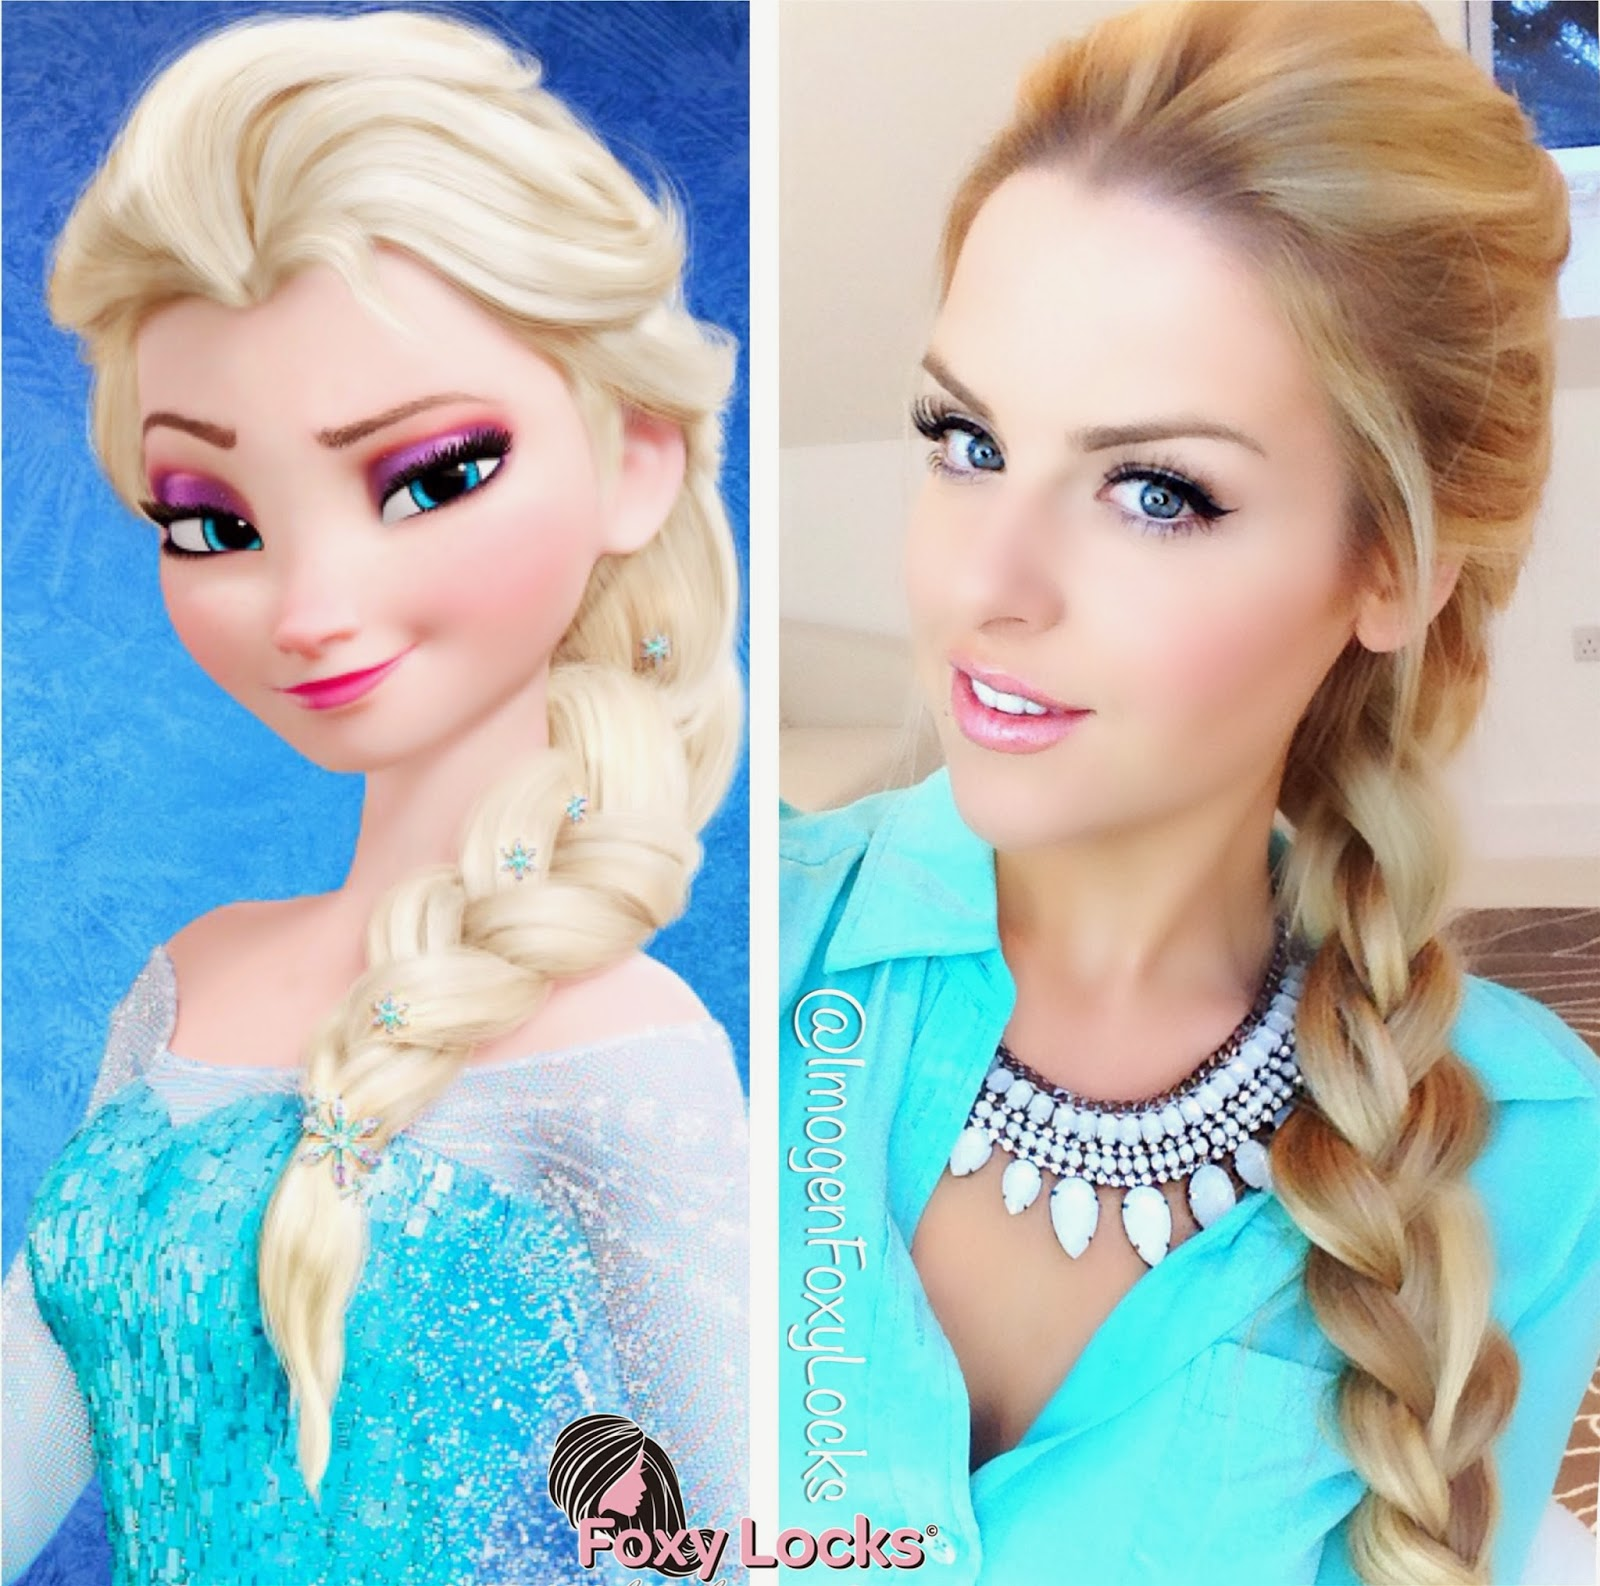 elsa hair style imogen foxy locks volumised braid hairstyle 1554